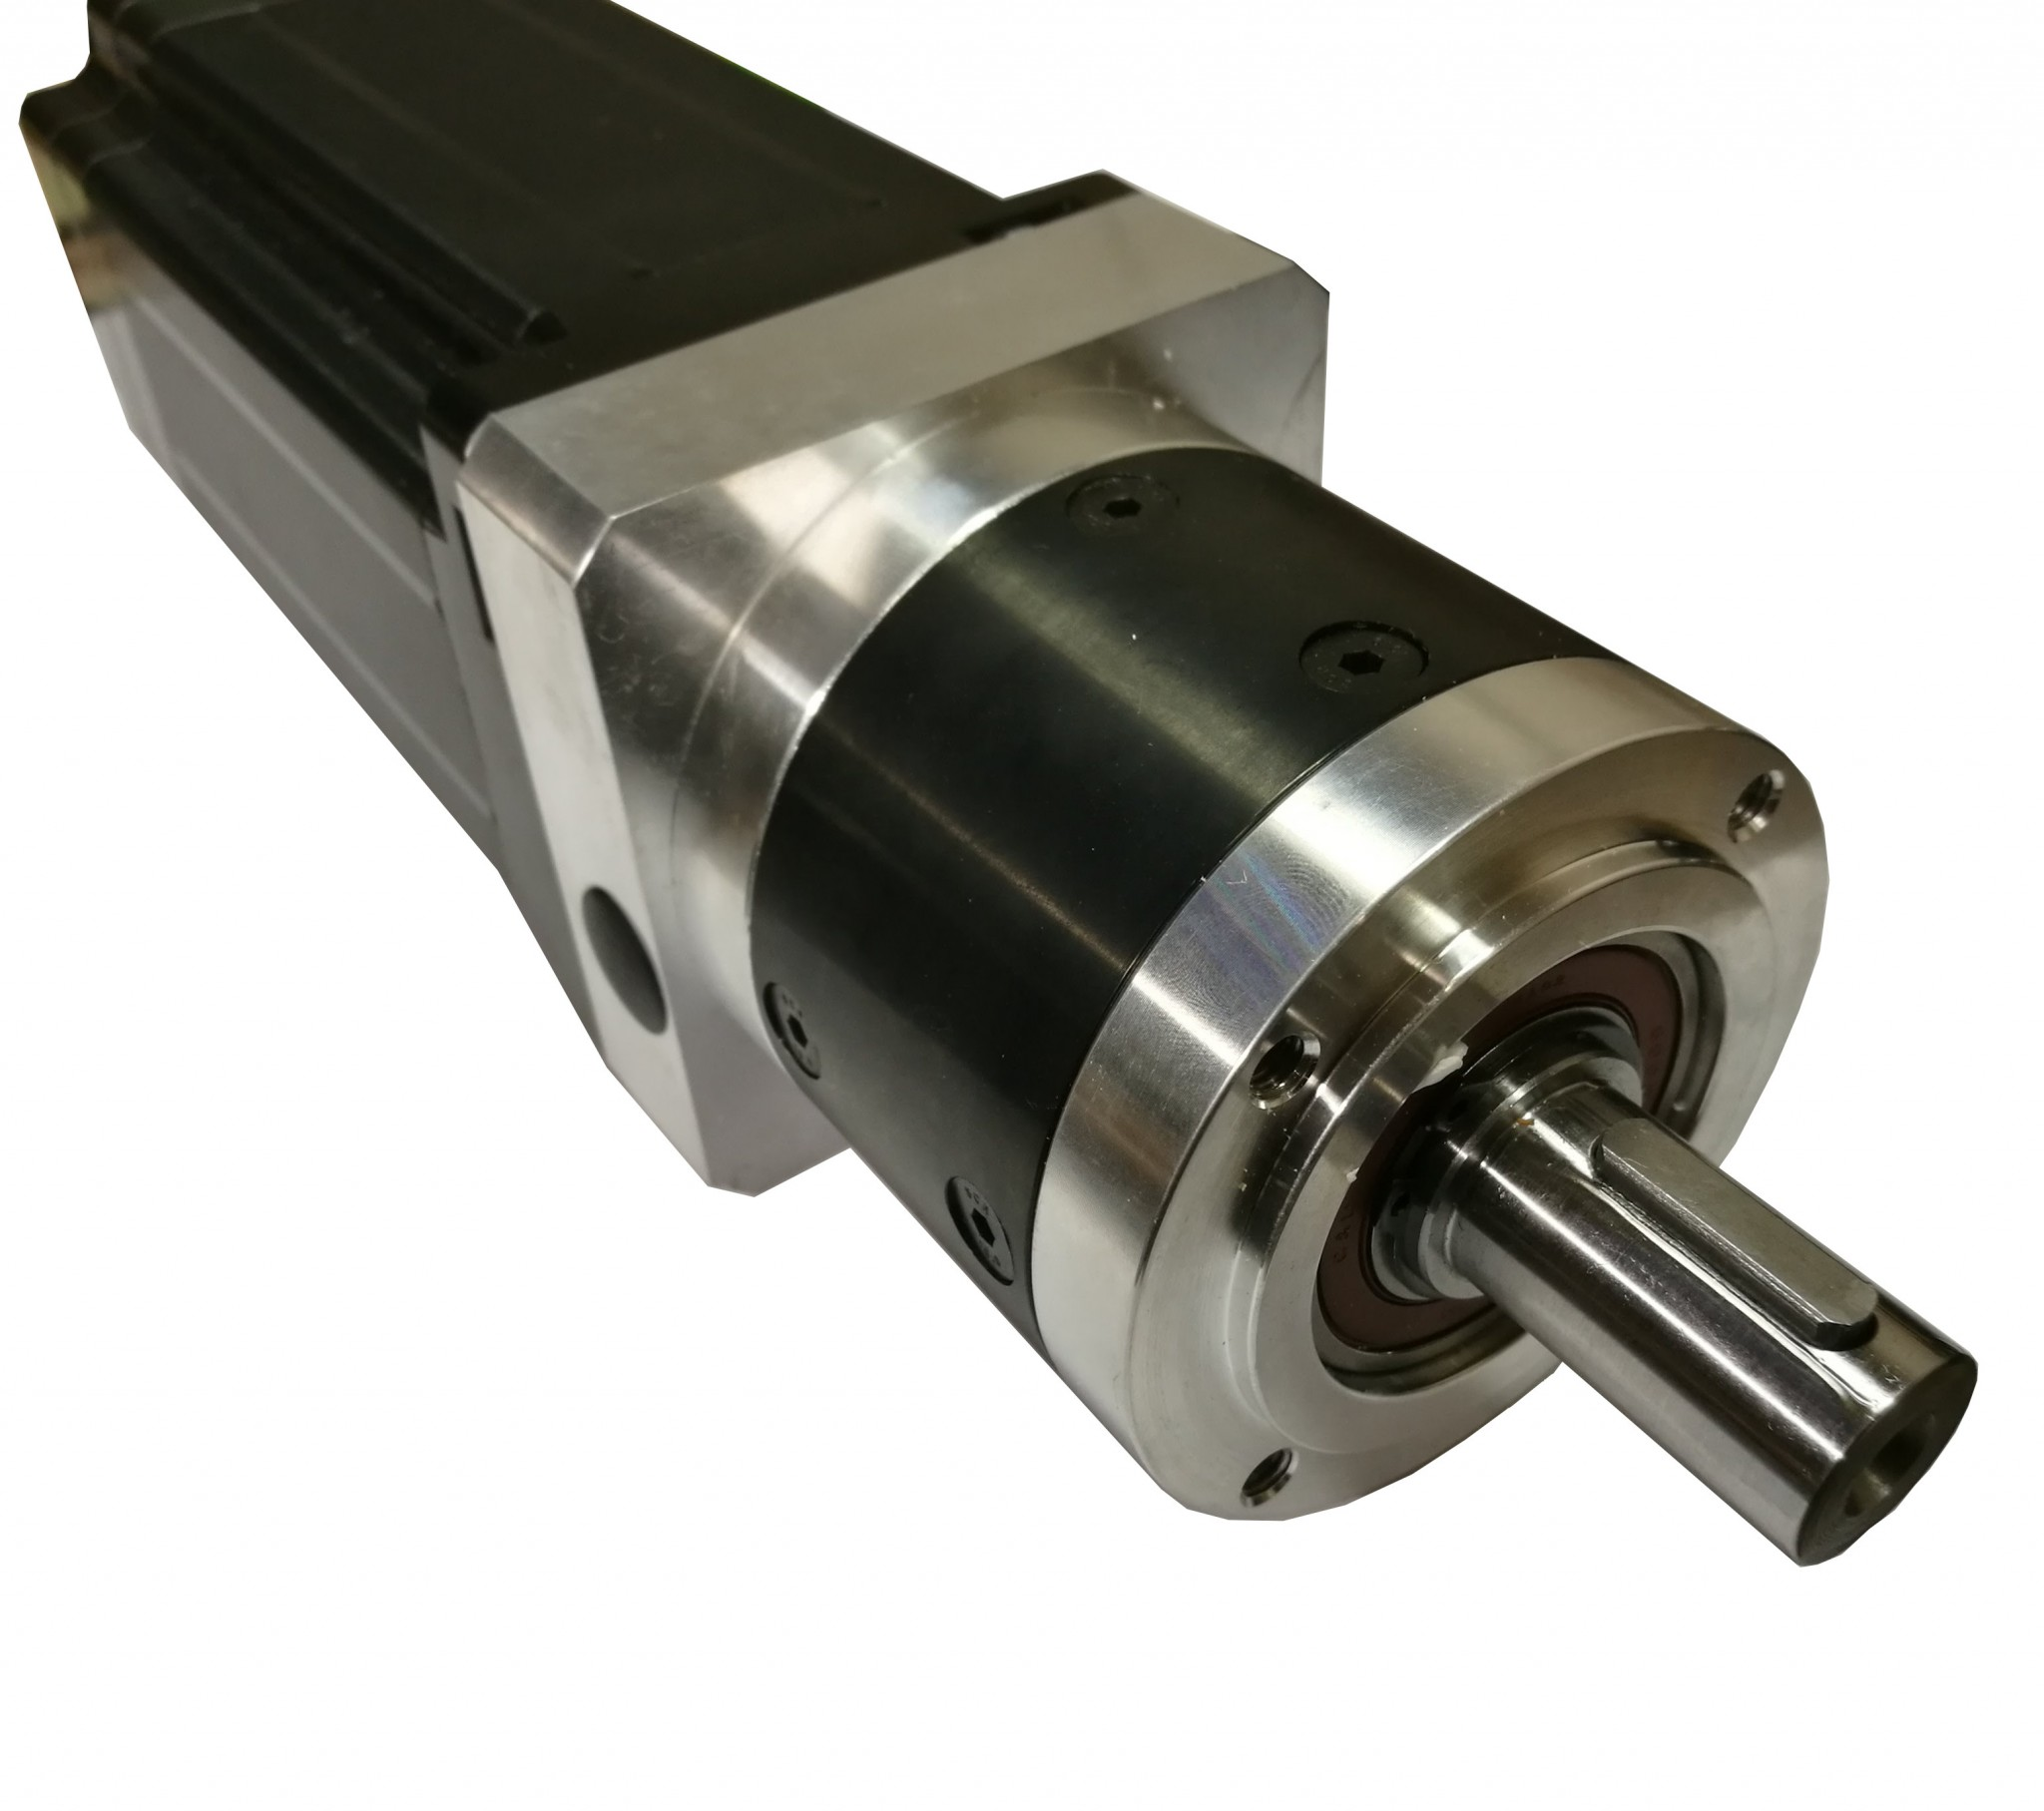 High quality planetary gearbox for nema 23 stepper motors for Planetary gearbox for servo motor